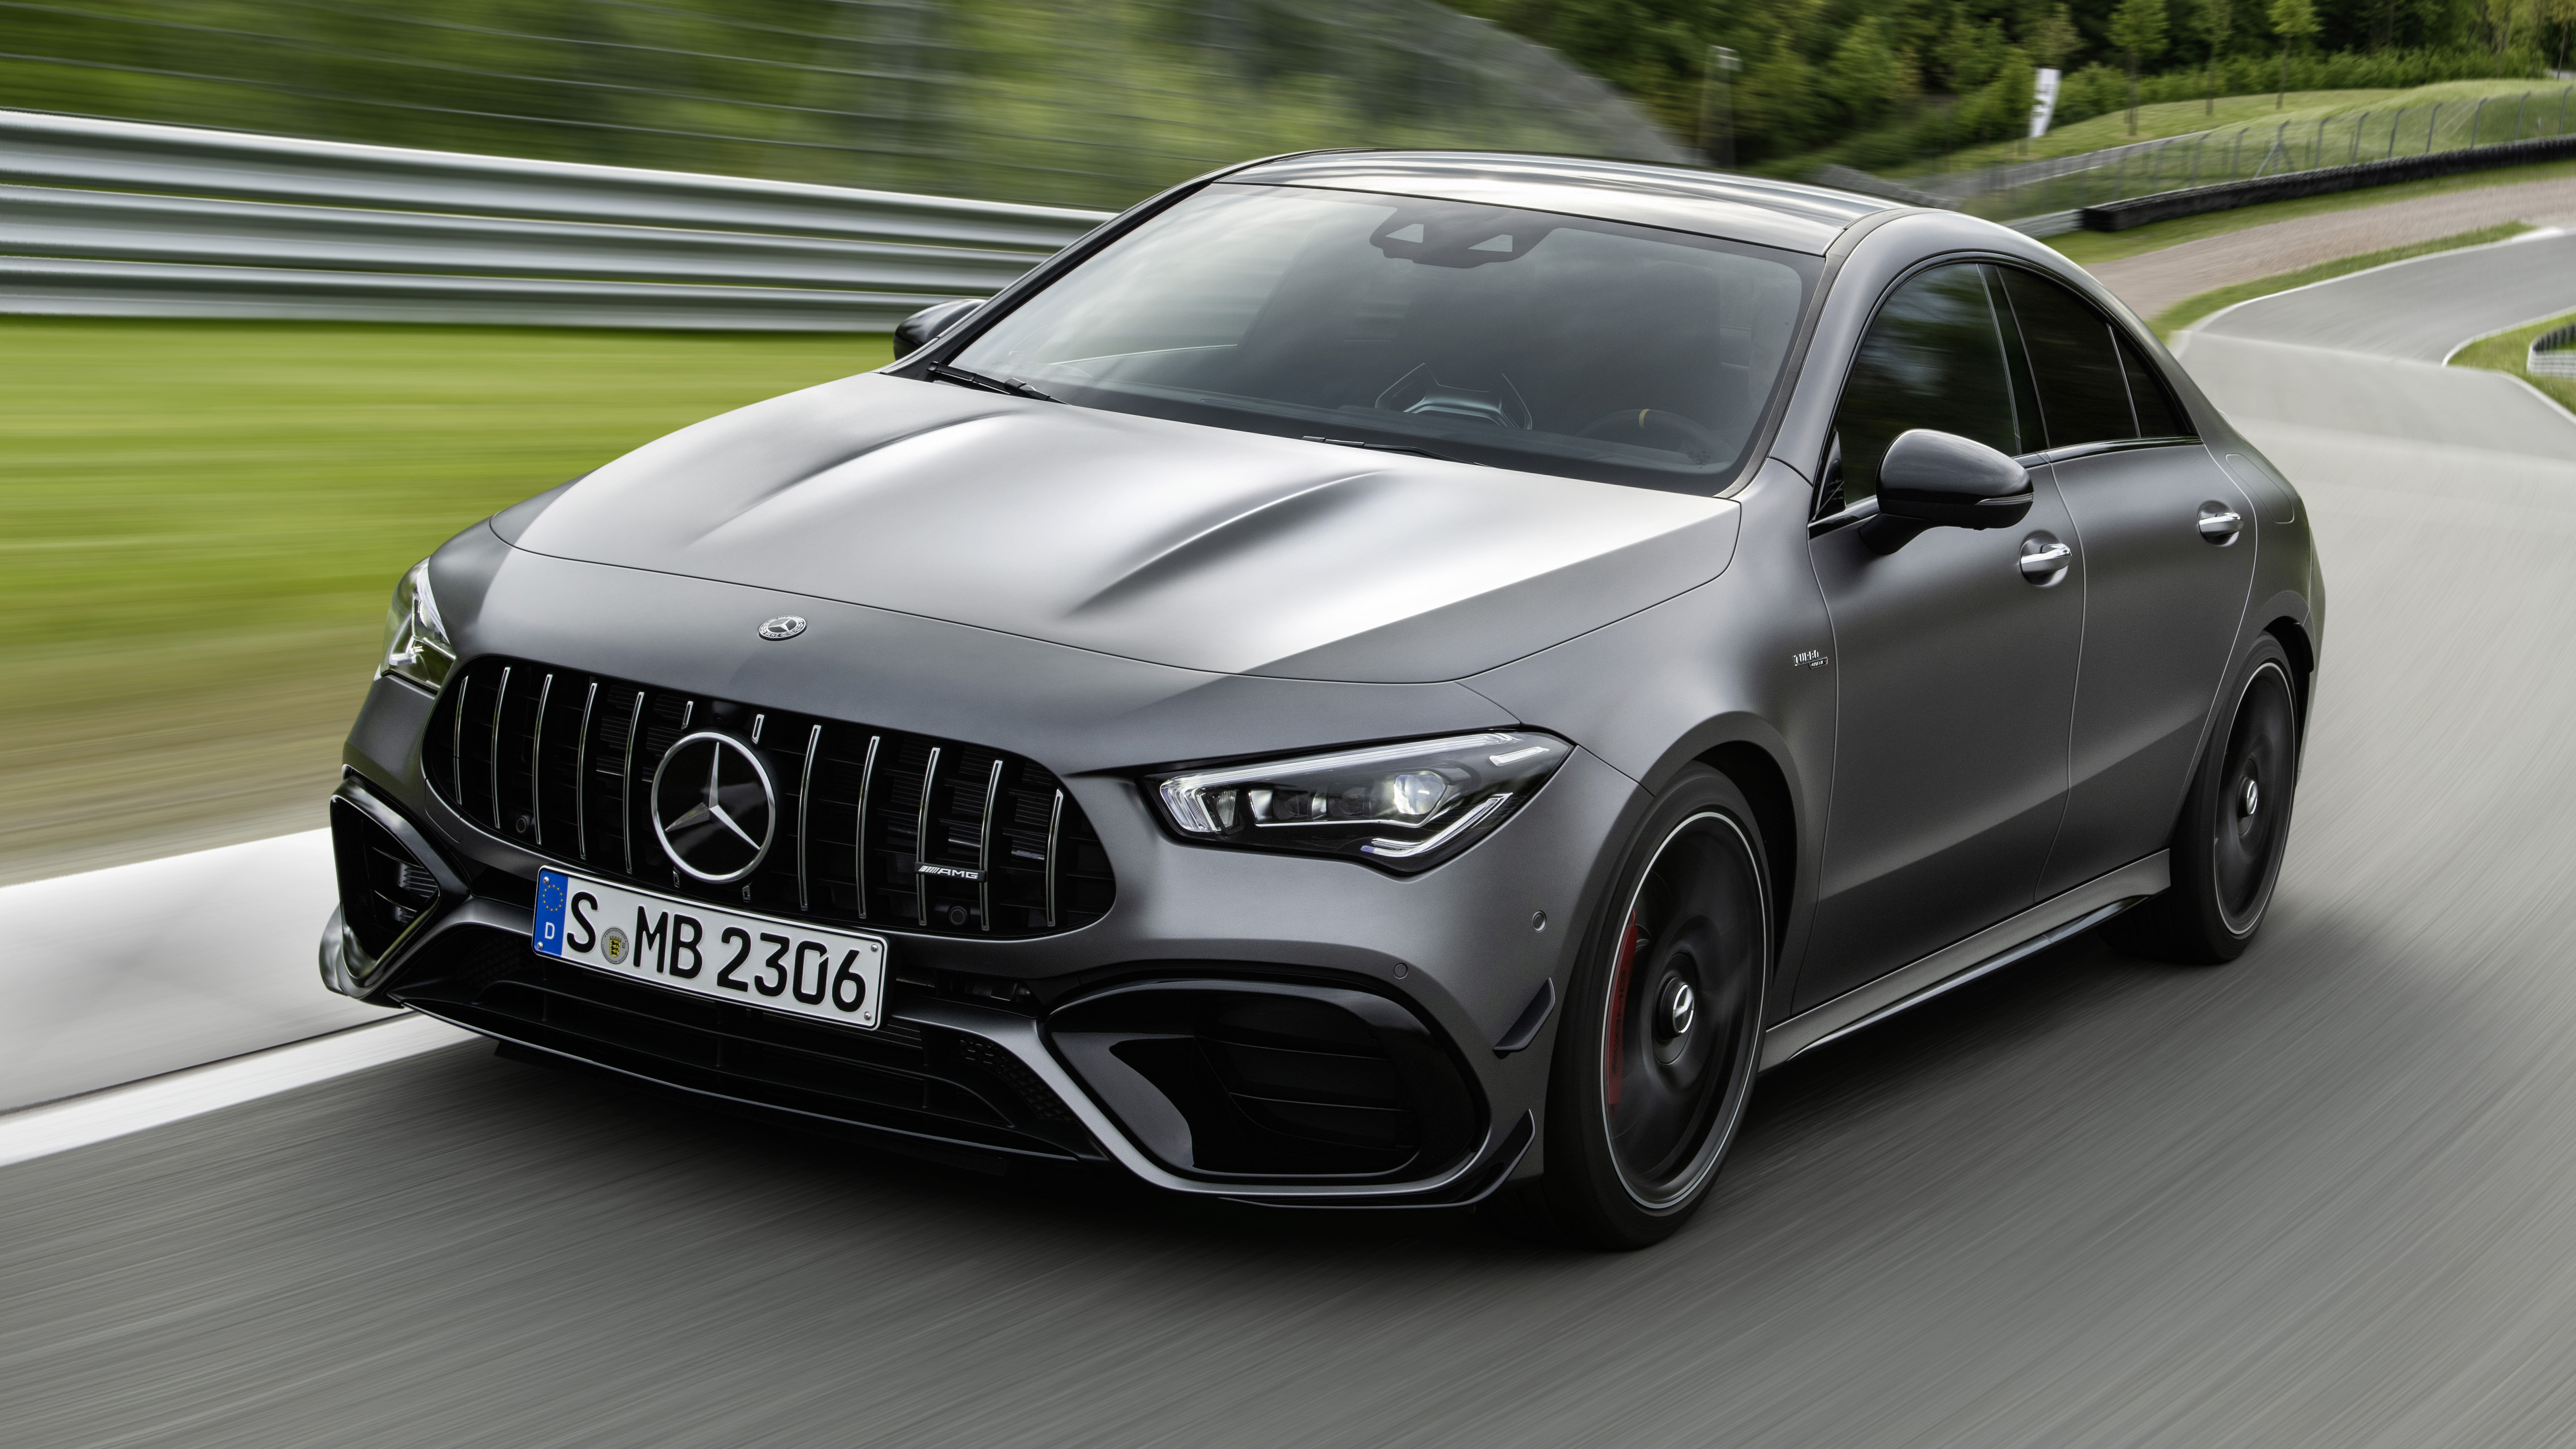 Certified Pre Owned Mercedes >> 2020 Mercedes-AMG CLA 45 revealed with 382 horsepower and trick AWD | Autoblog